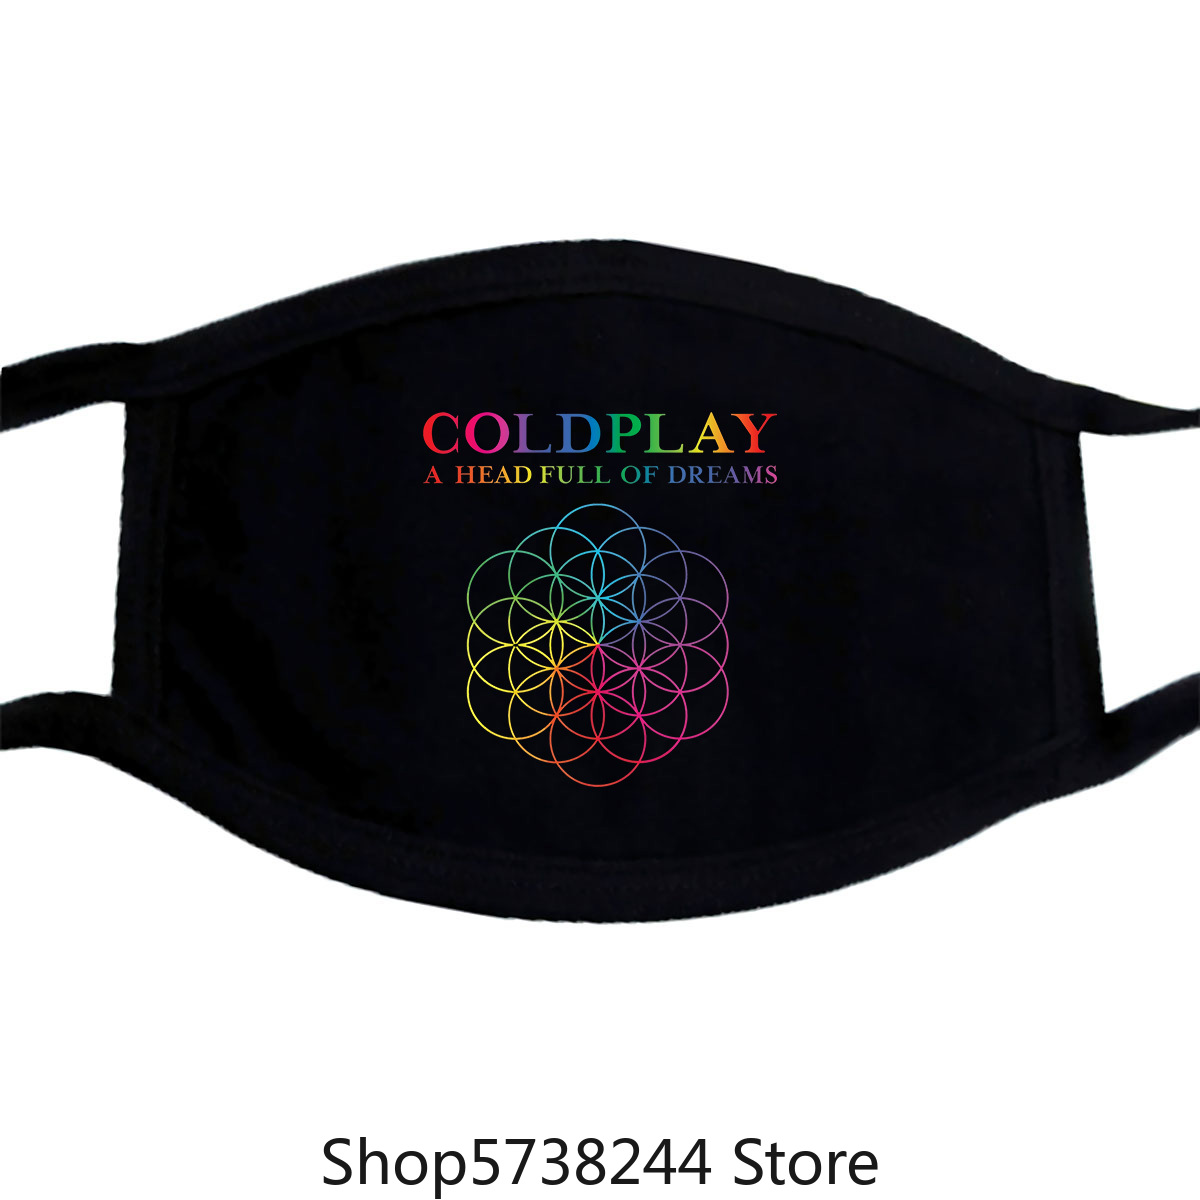 Coldplay A Head Full Of Dreams Mens Black Cotton Top Mask Tee New Washable Reusable Mask With